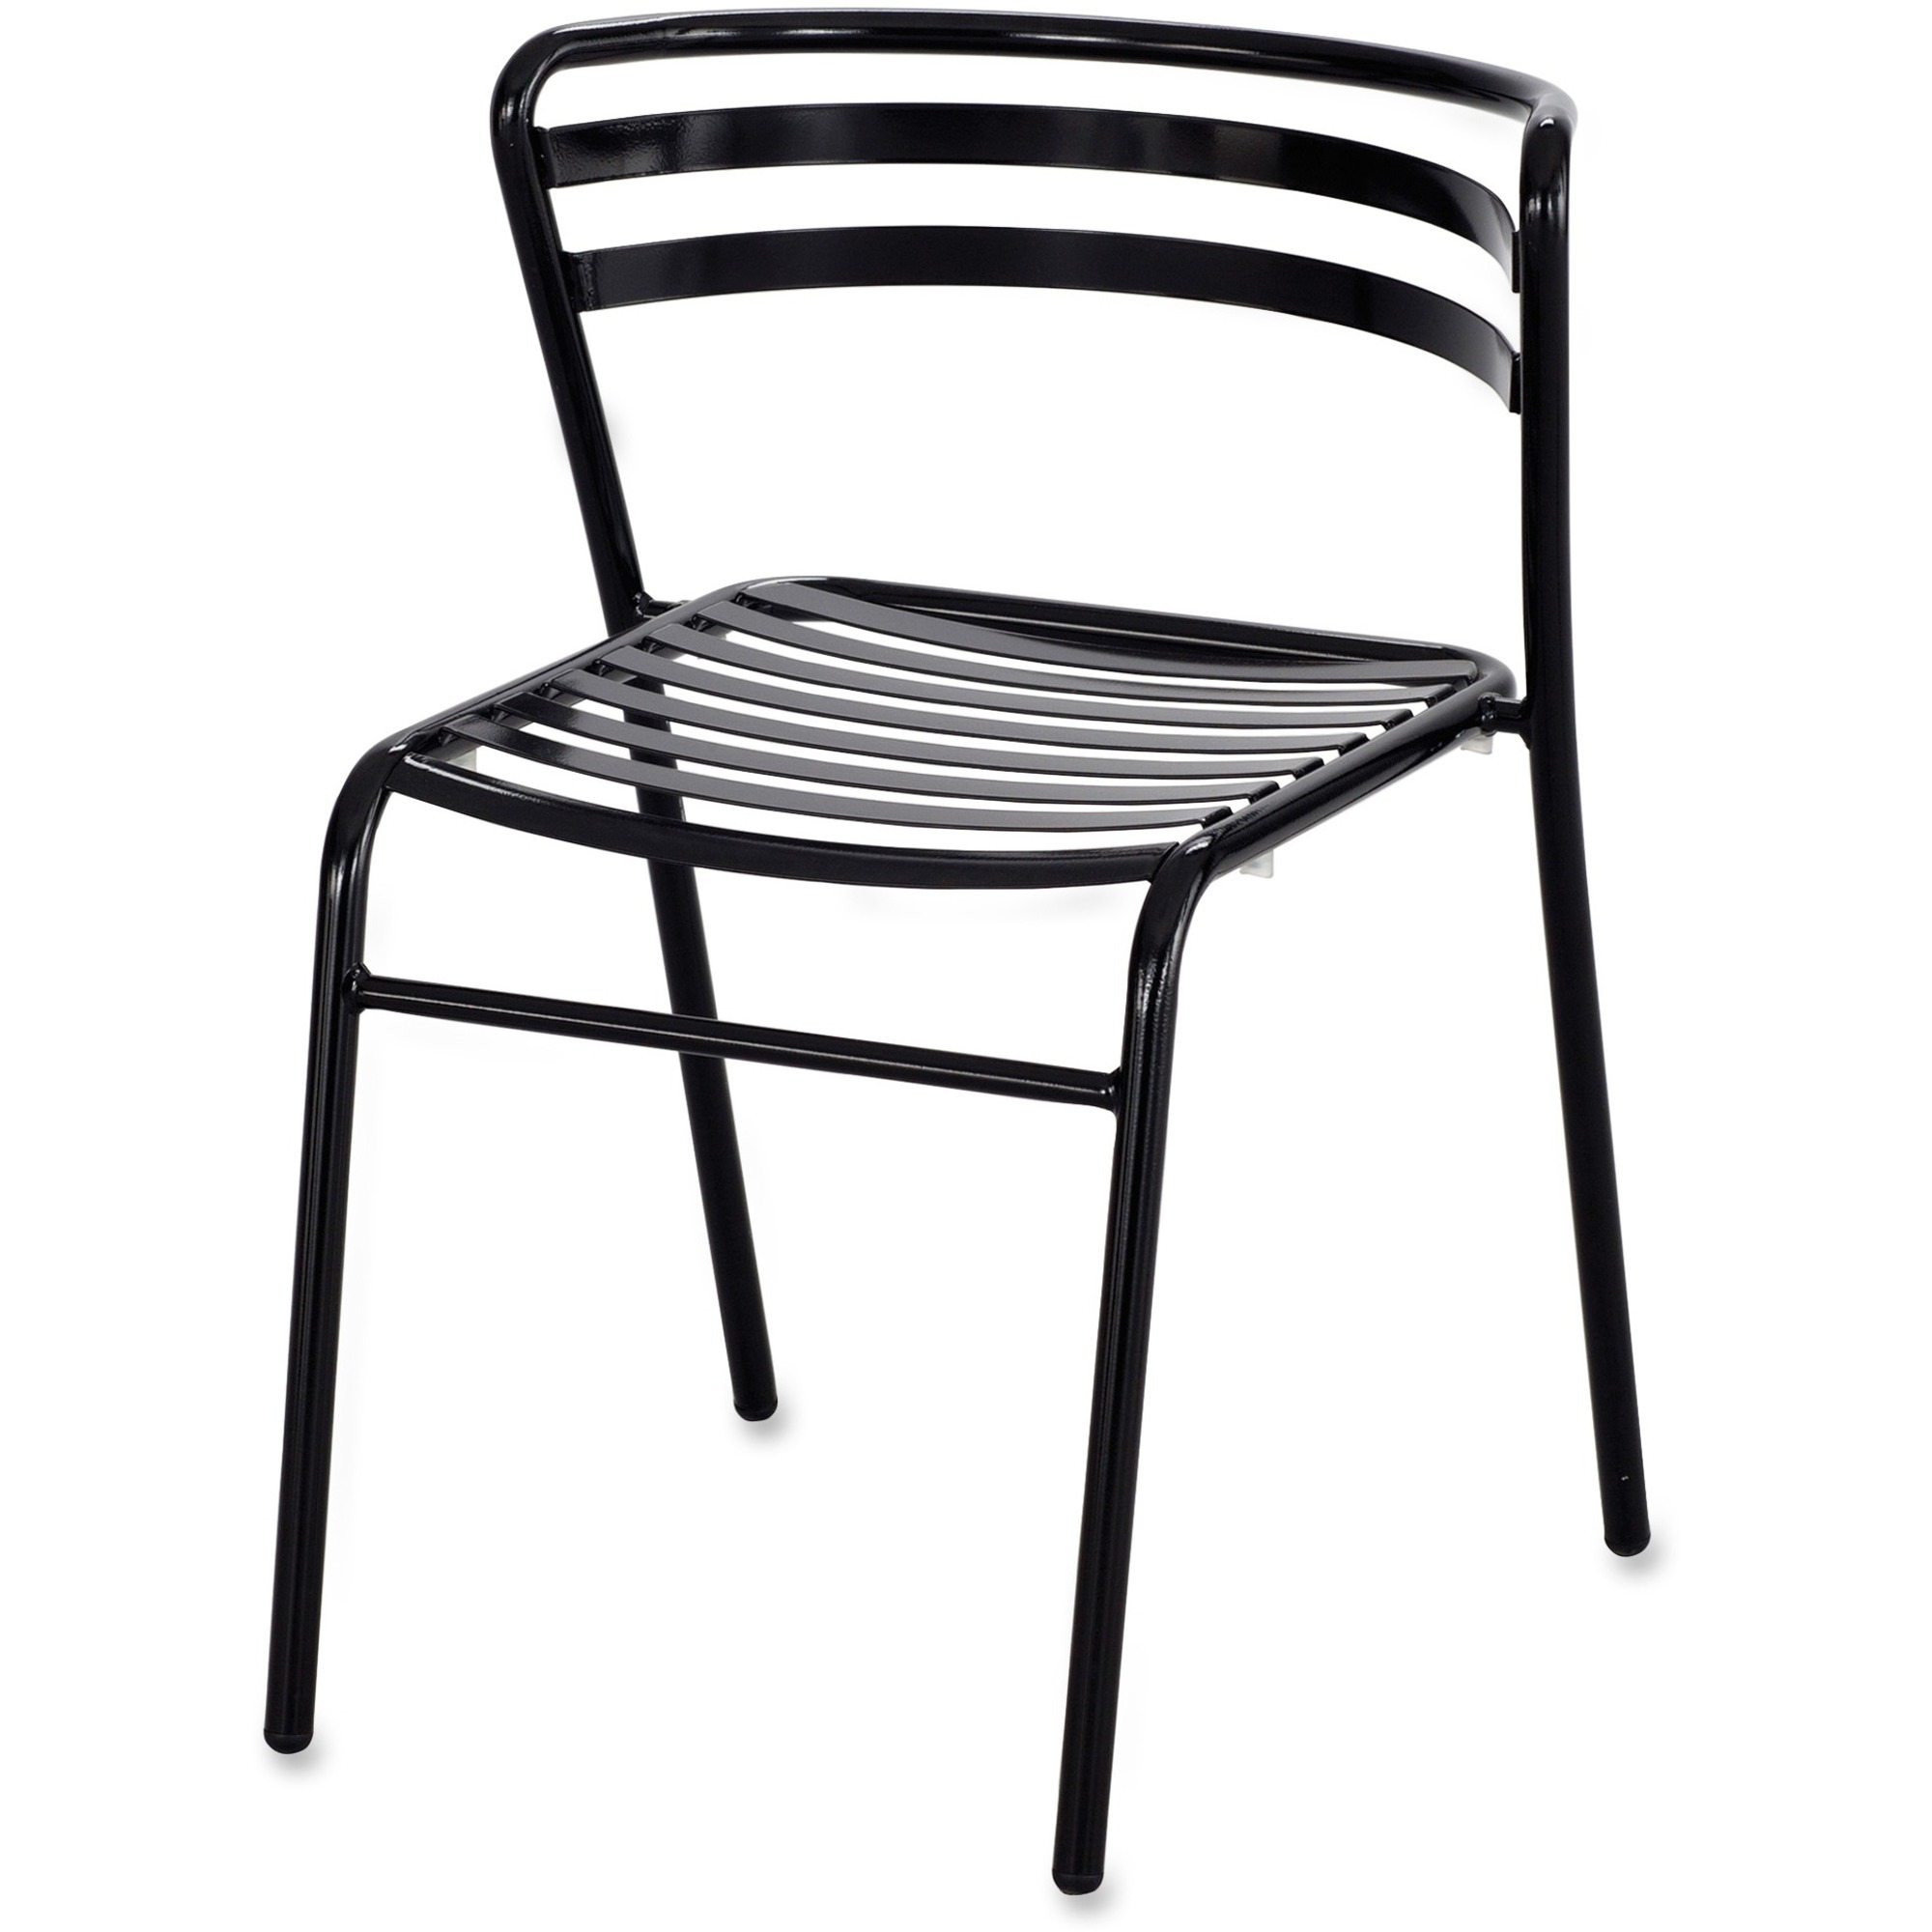 kitchen chair flash furniture amazon cupboard distressed stackable indoor metal white dp ca home